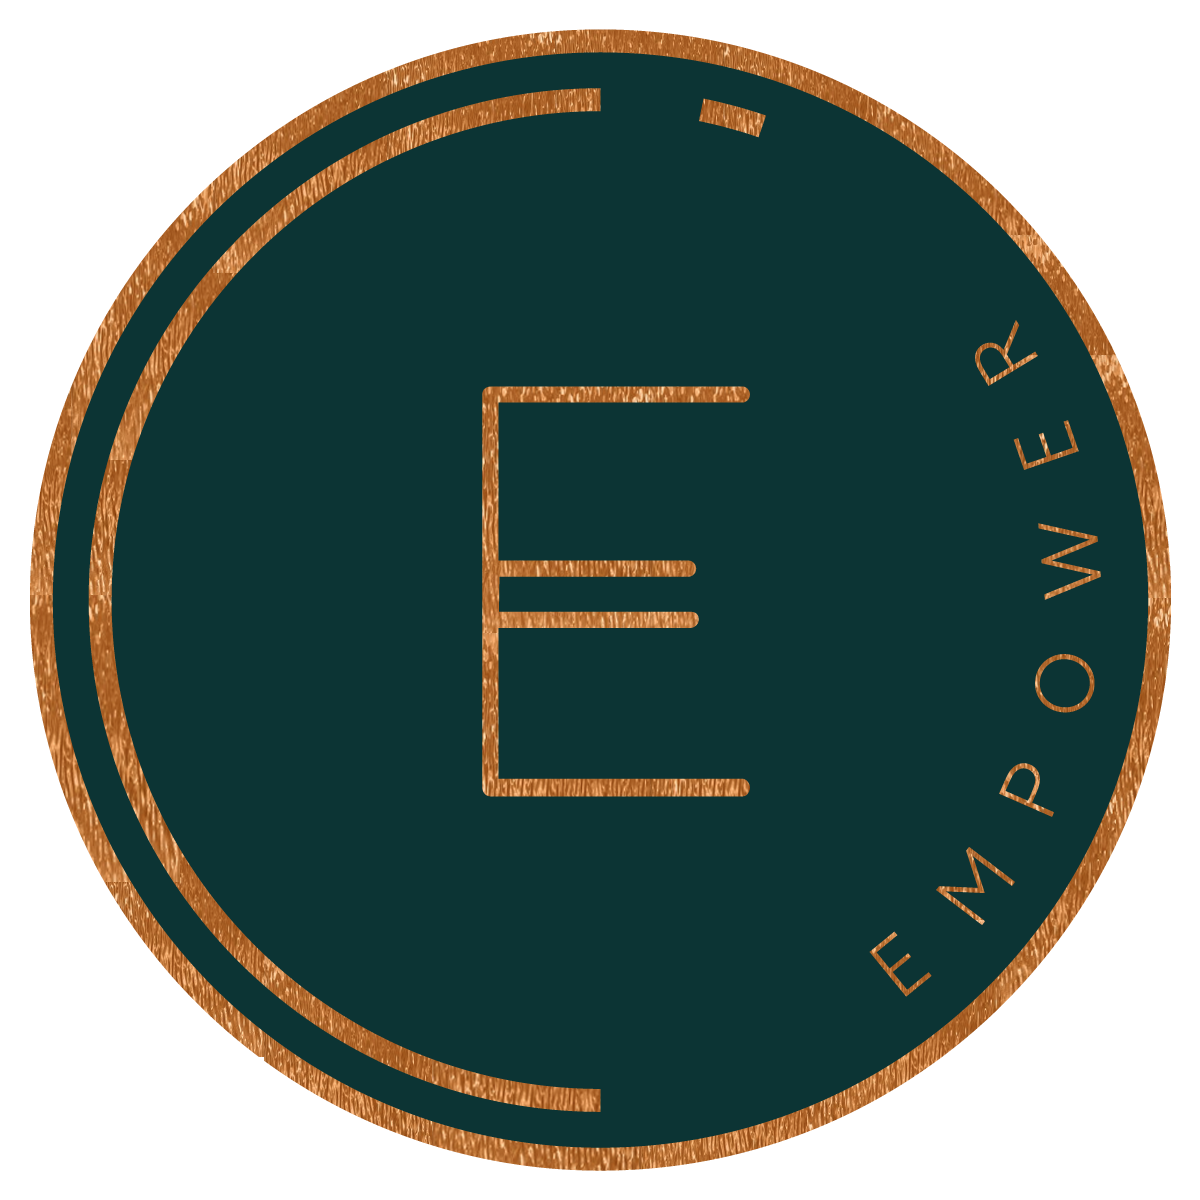 eca-full-submark-empower-green-copper-foil (1).png